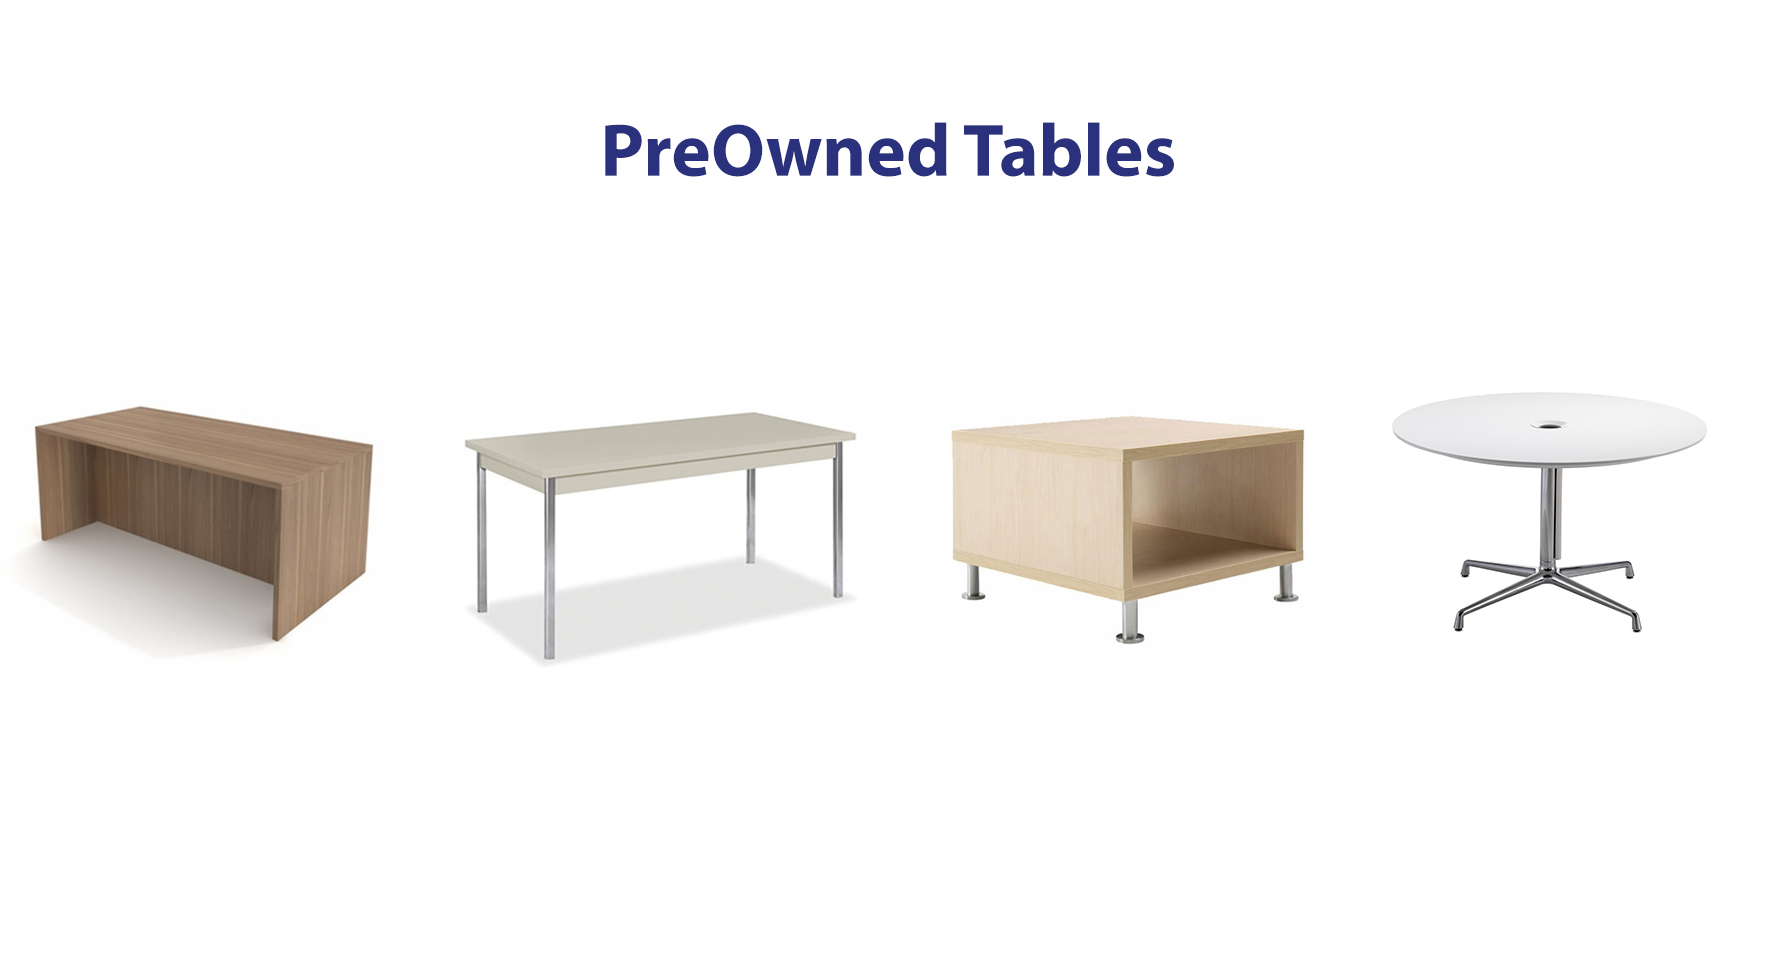 PreOwned Office furniture